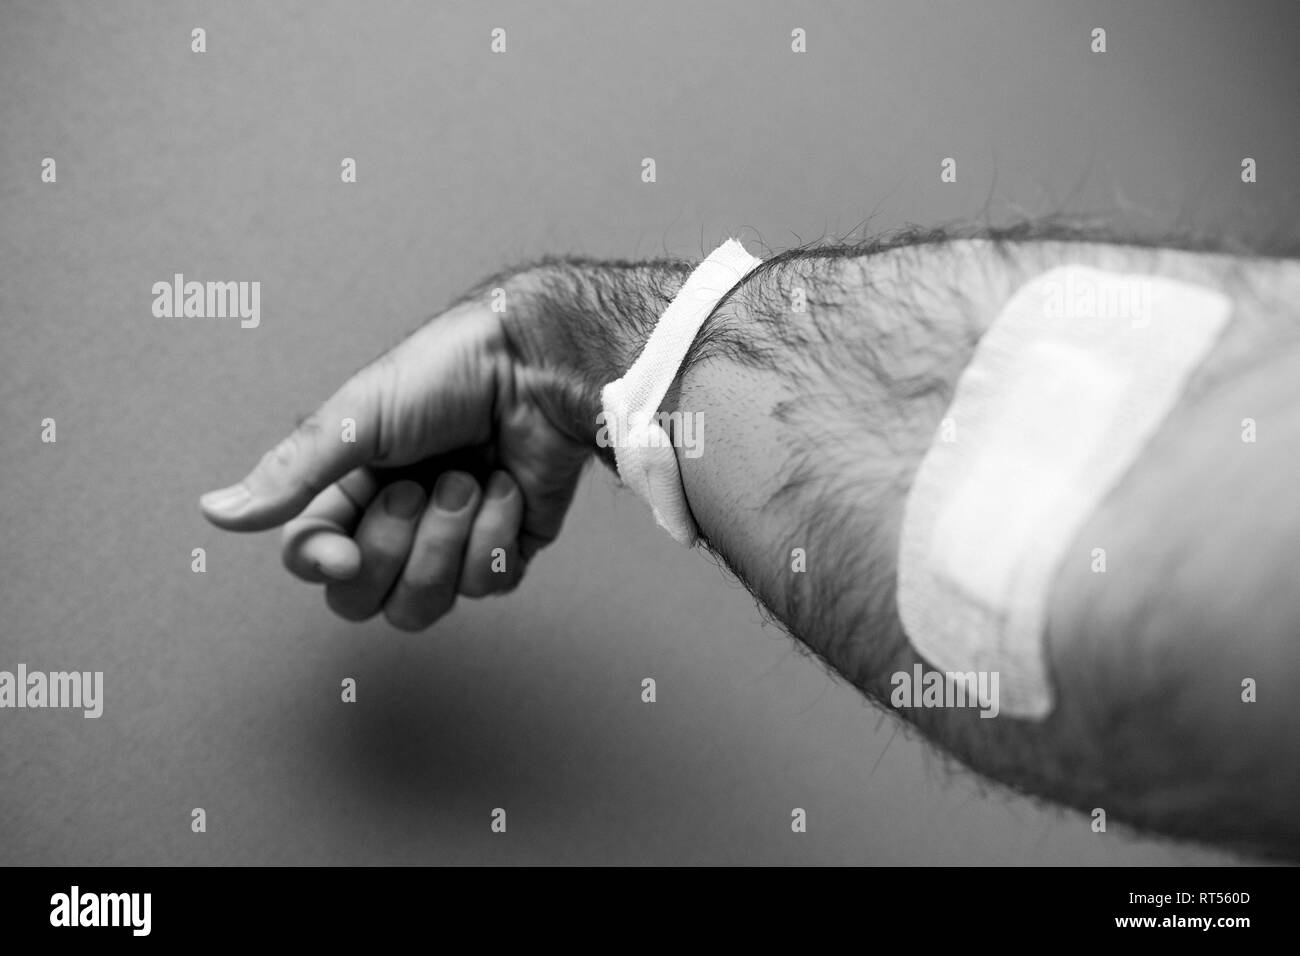 Close-up detail of man hand with adhesive tape after blood transfusion  analysis with part of the hair been removed by shaving - black and white image  - Stock Image